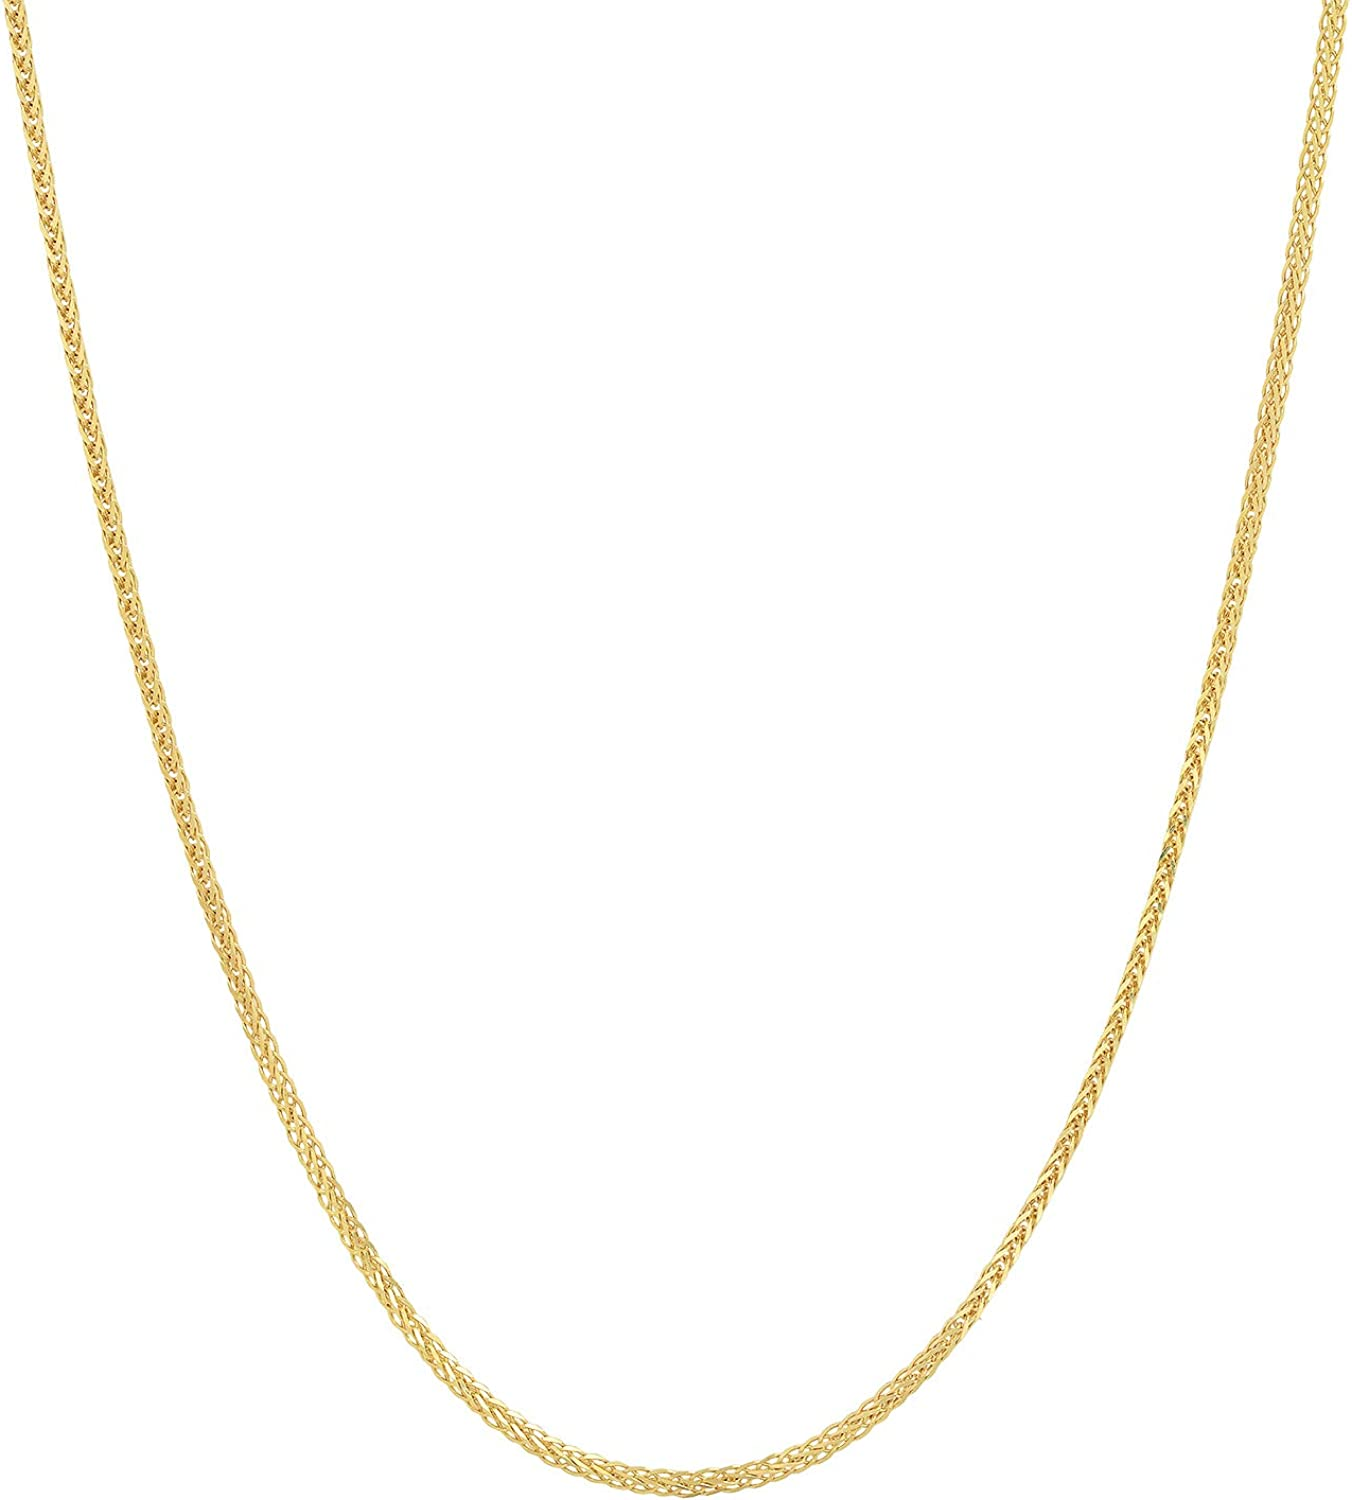 Jewelry Pilot 14K Yellow Gold 1mm Square Wheat Chain Necklace with Lobster Claw Clasp